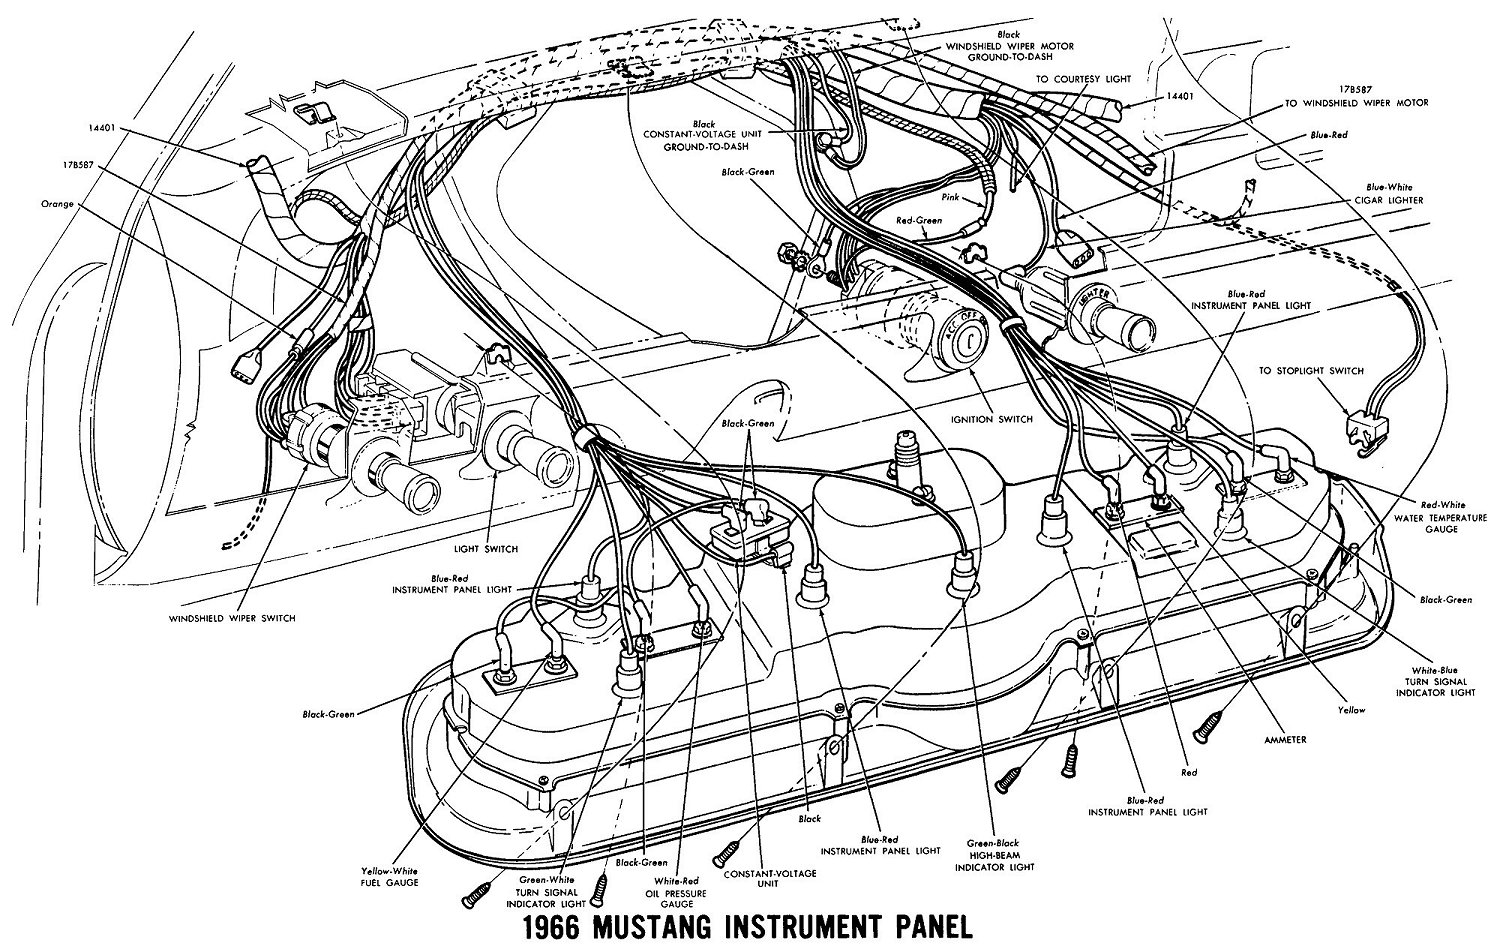 1966 Mustang Wiring Diagrams Average Joe Restoration Vauxhall Colour Codes Instrument Panel